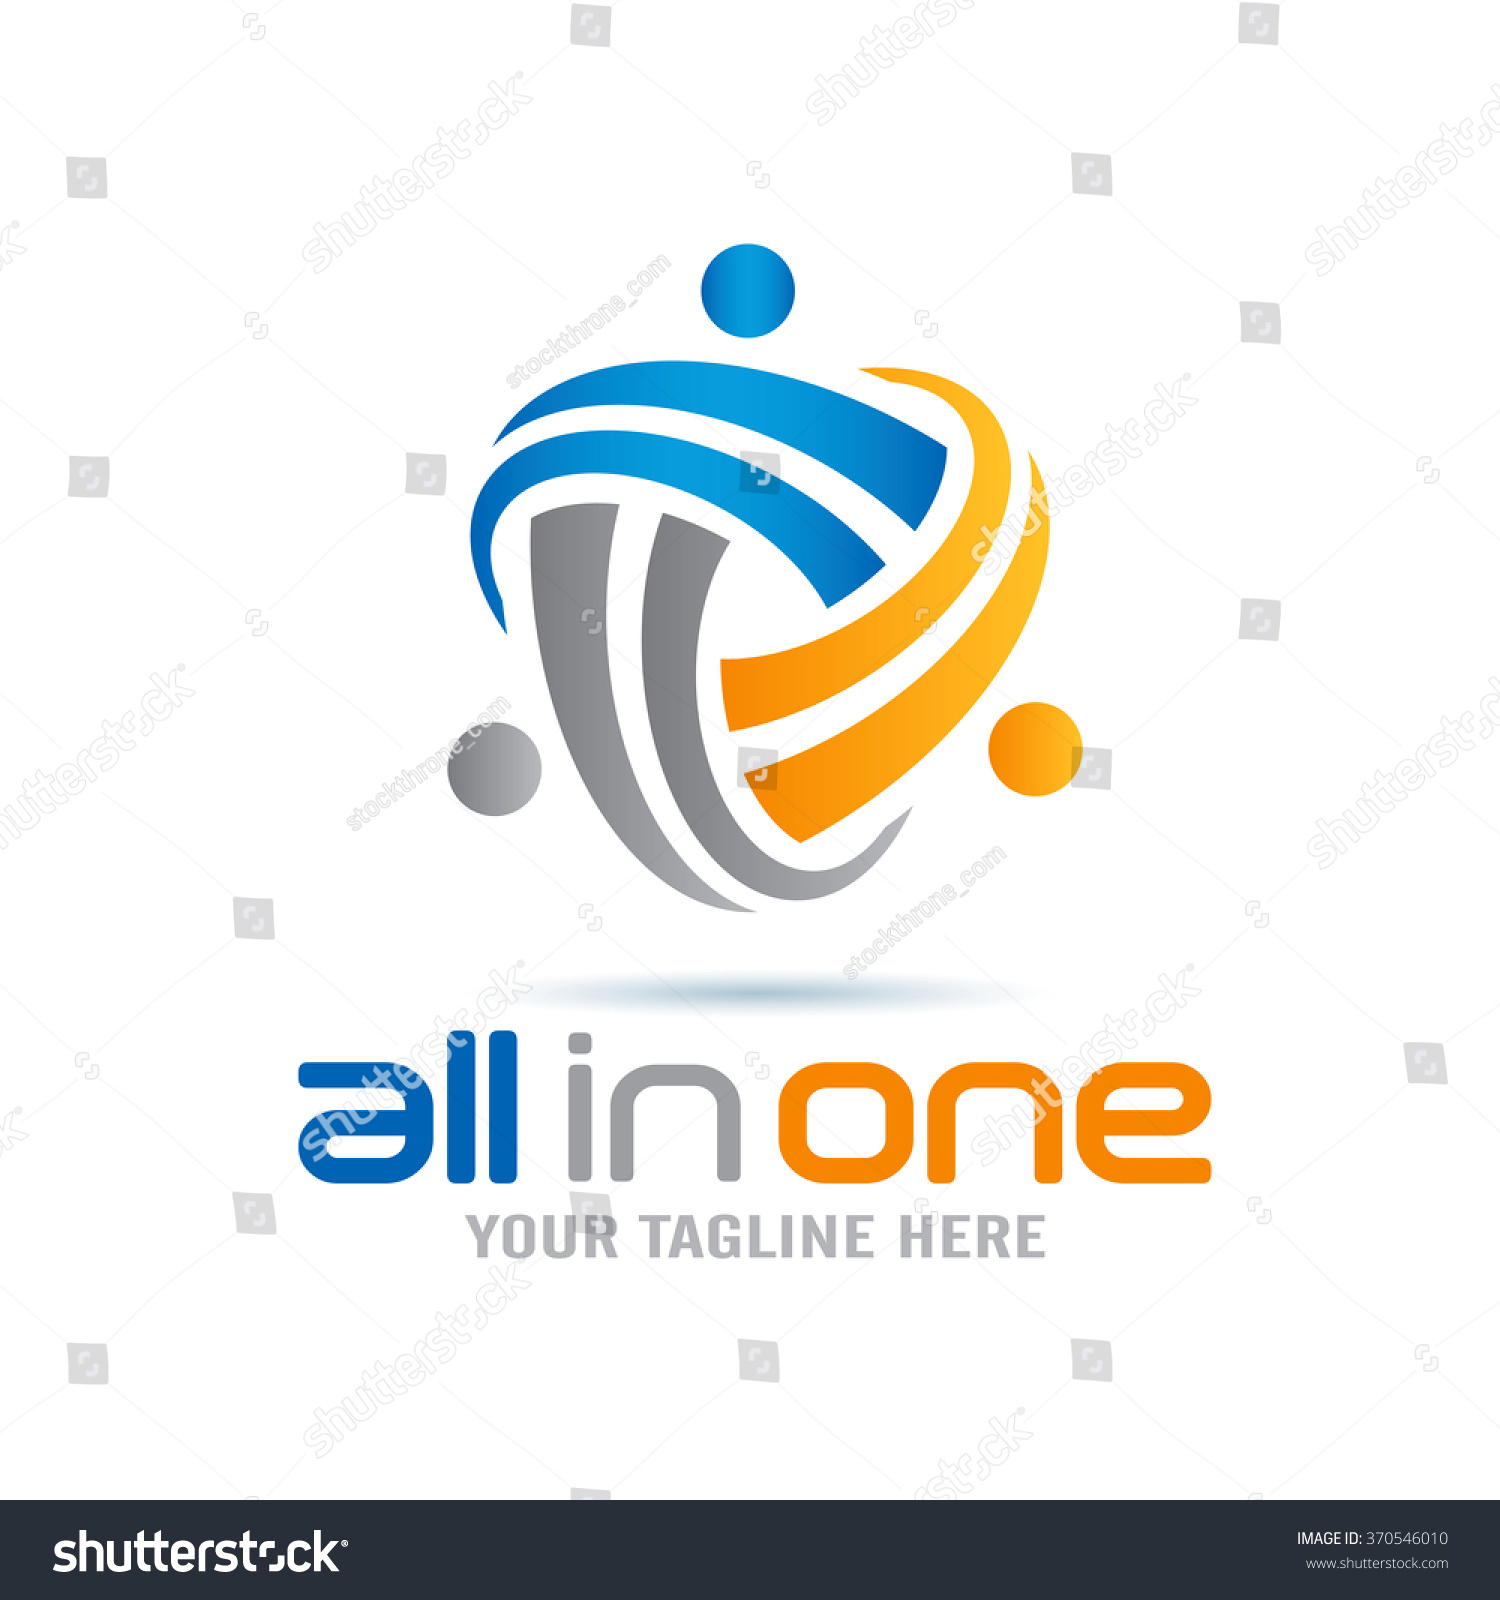 All In One Abstract People Logo Icon Elements Template #370546010